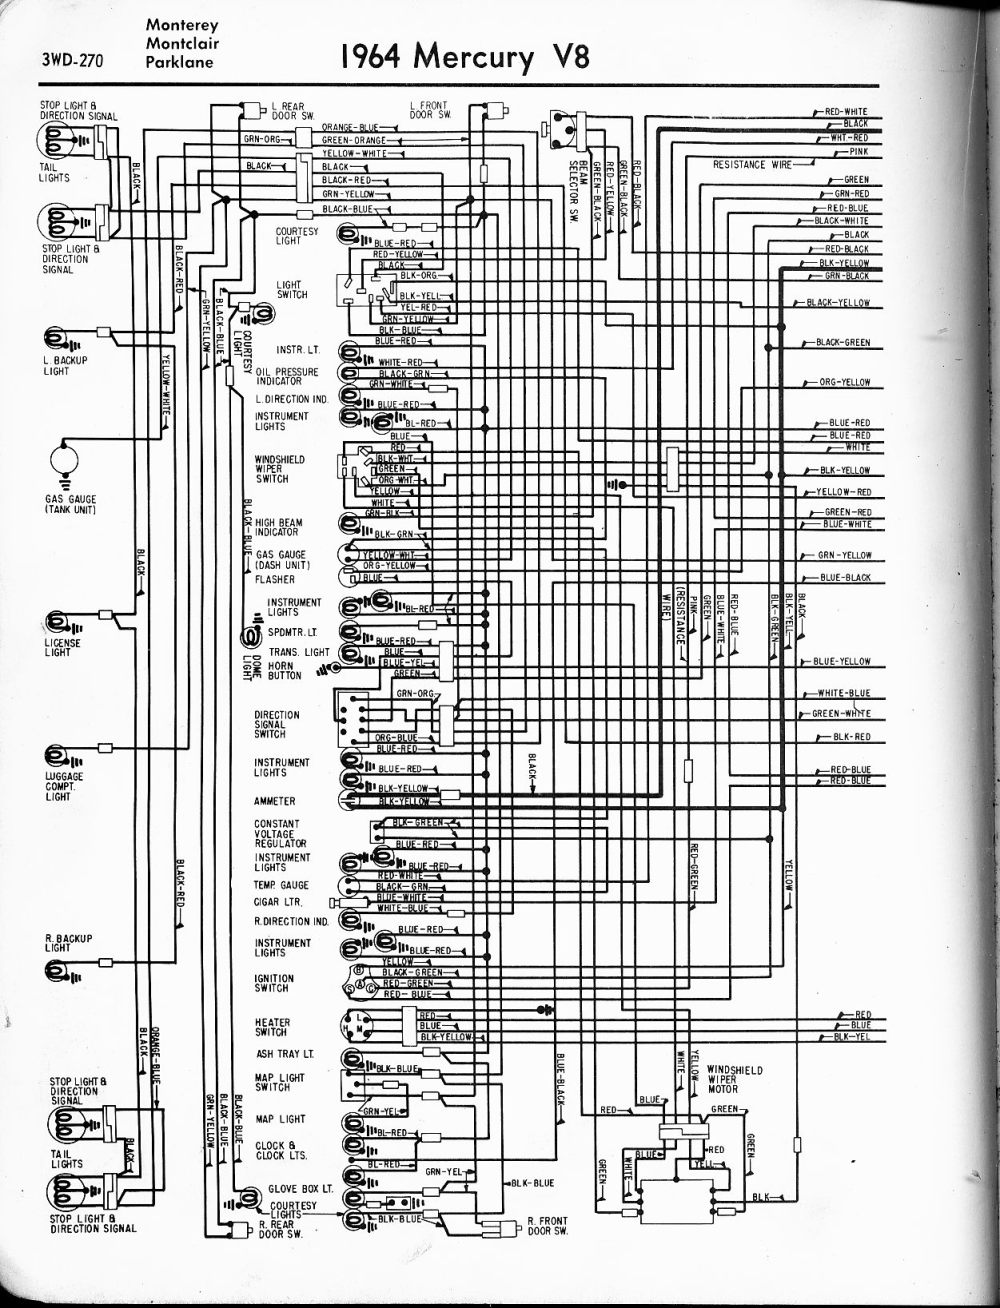 medium resolution of mercury wiring diagrams the old car manual project 1964 v8 monterey montclair parklane